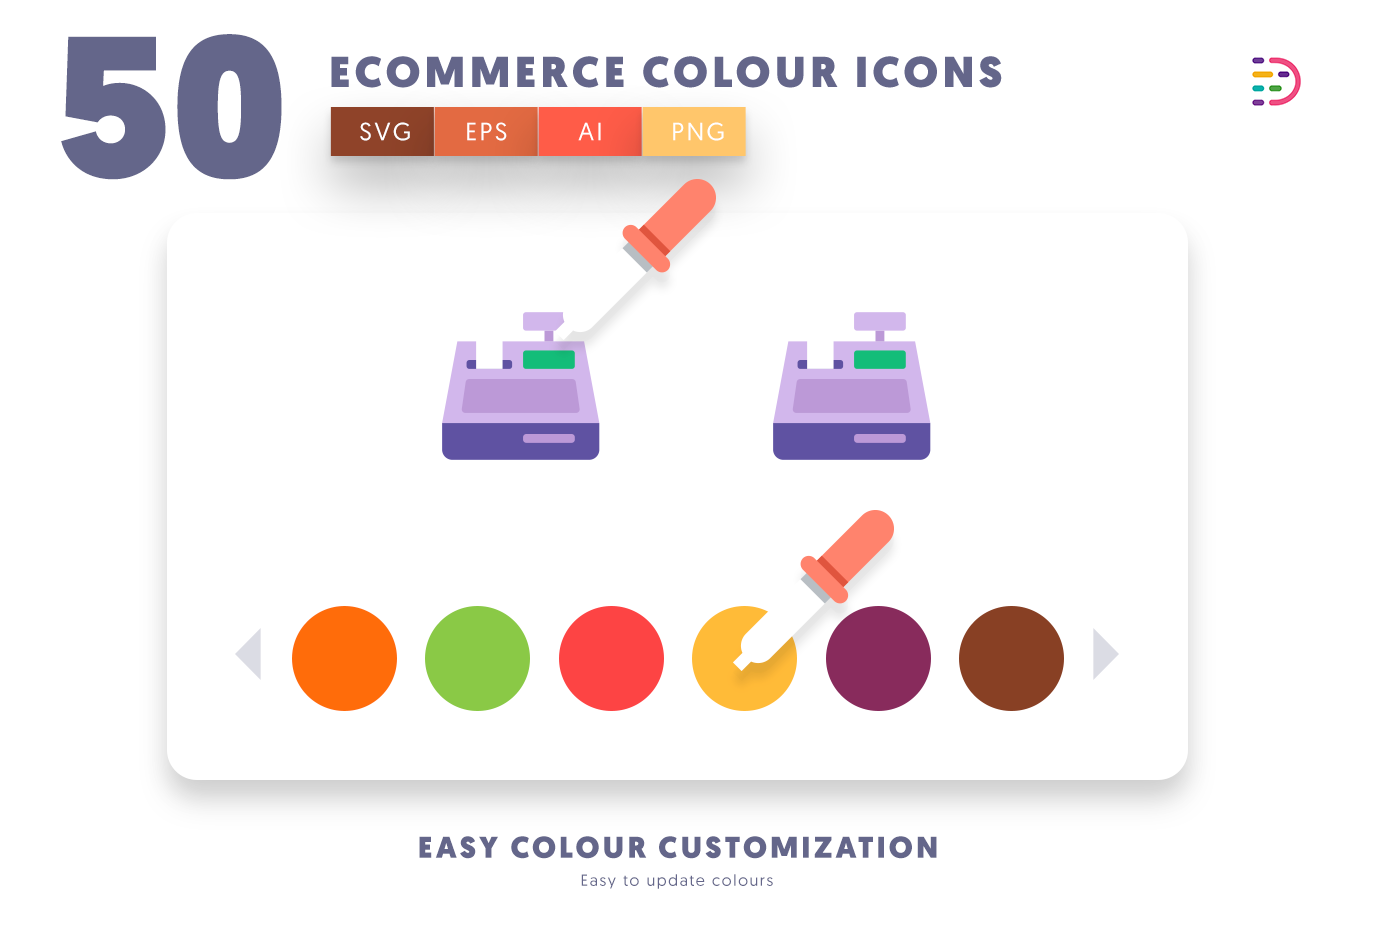 Customizable and vector 50 Ecommerce Colour Icons